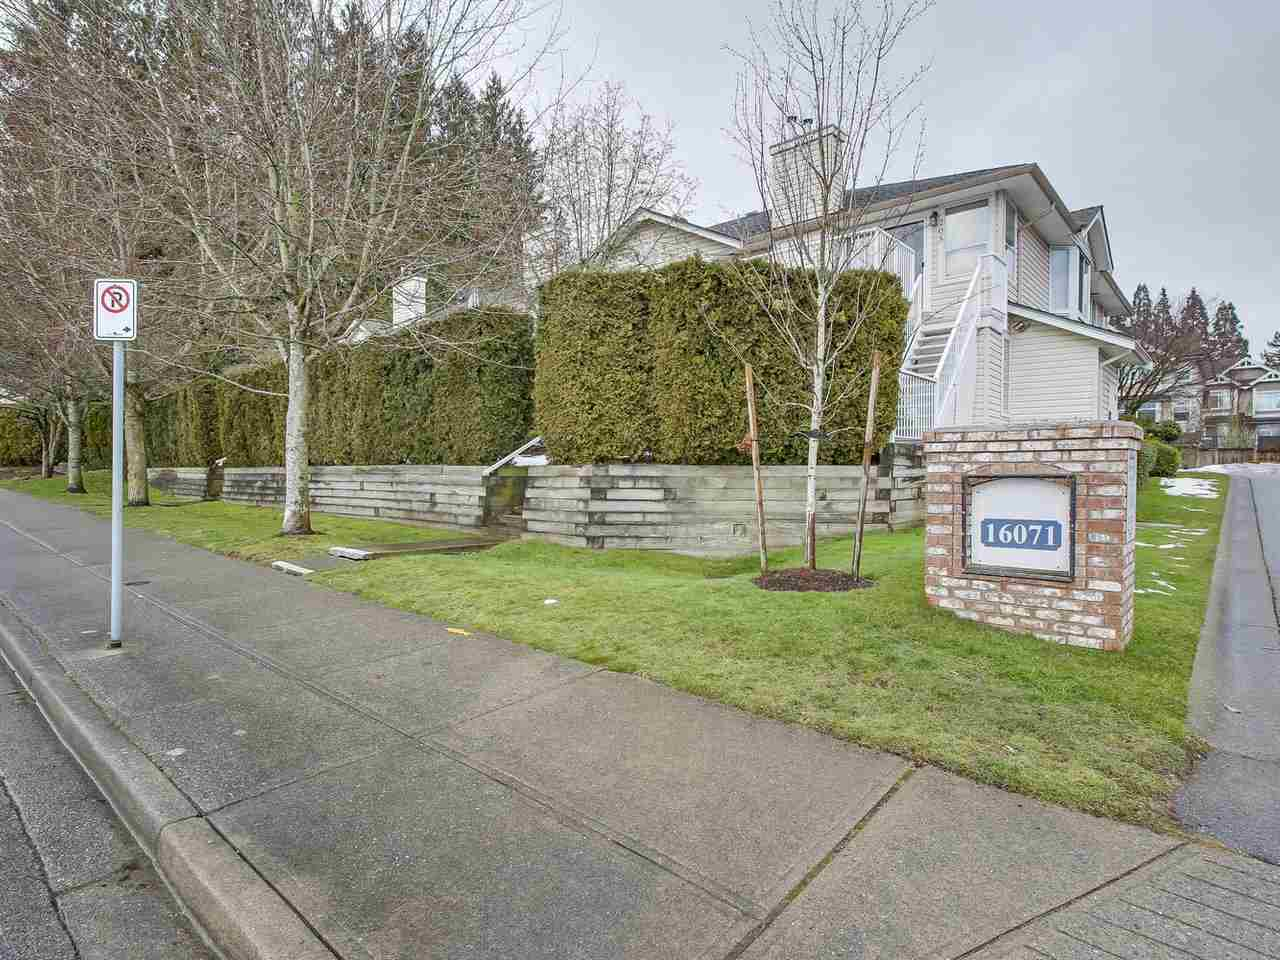 Main Photo: 107 16071 82 Avenue in Surrey: Fleetwood Tynehead Townhouse for sale : MLS® # R2245993